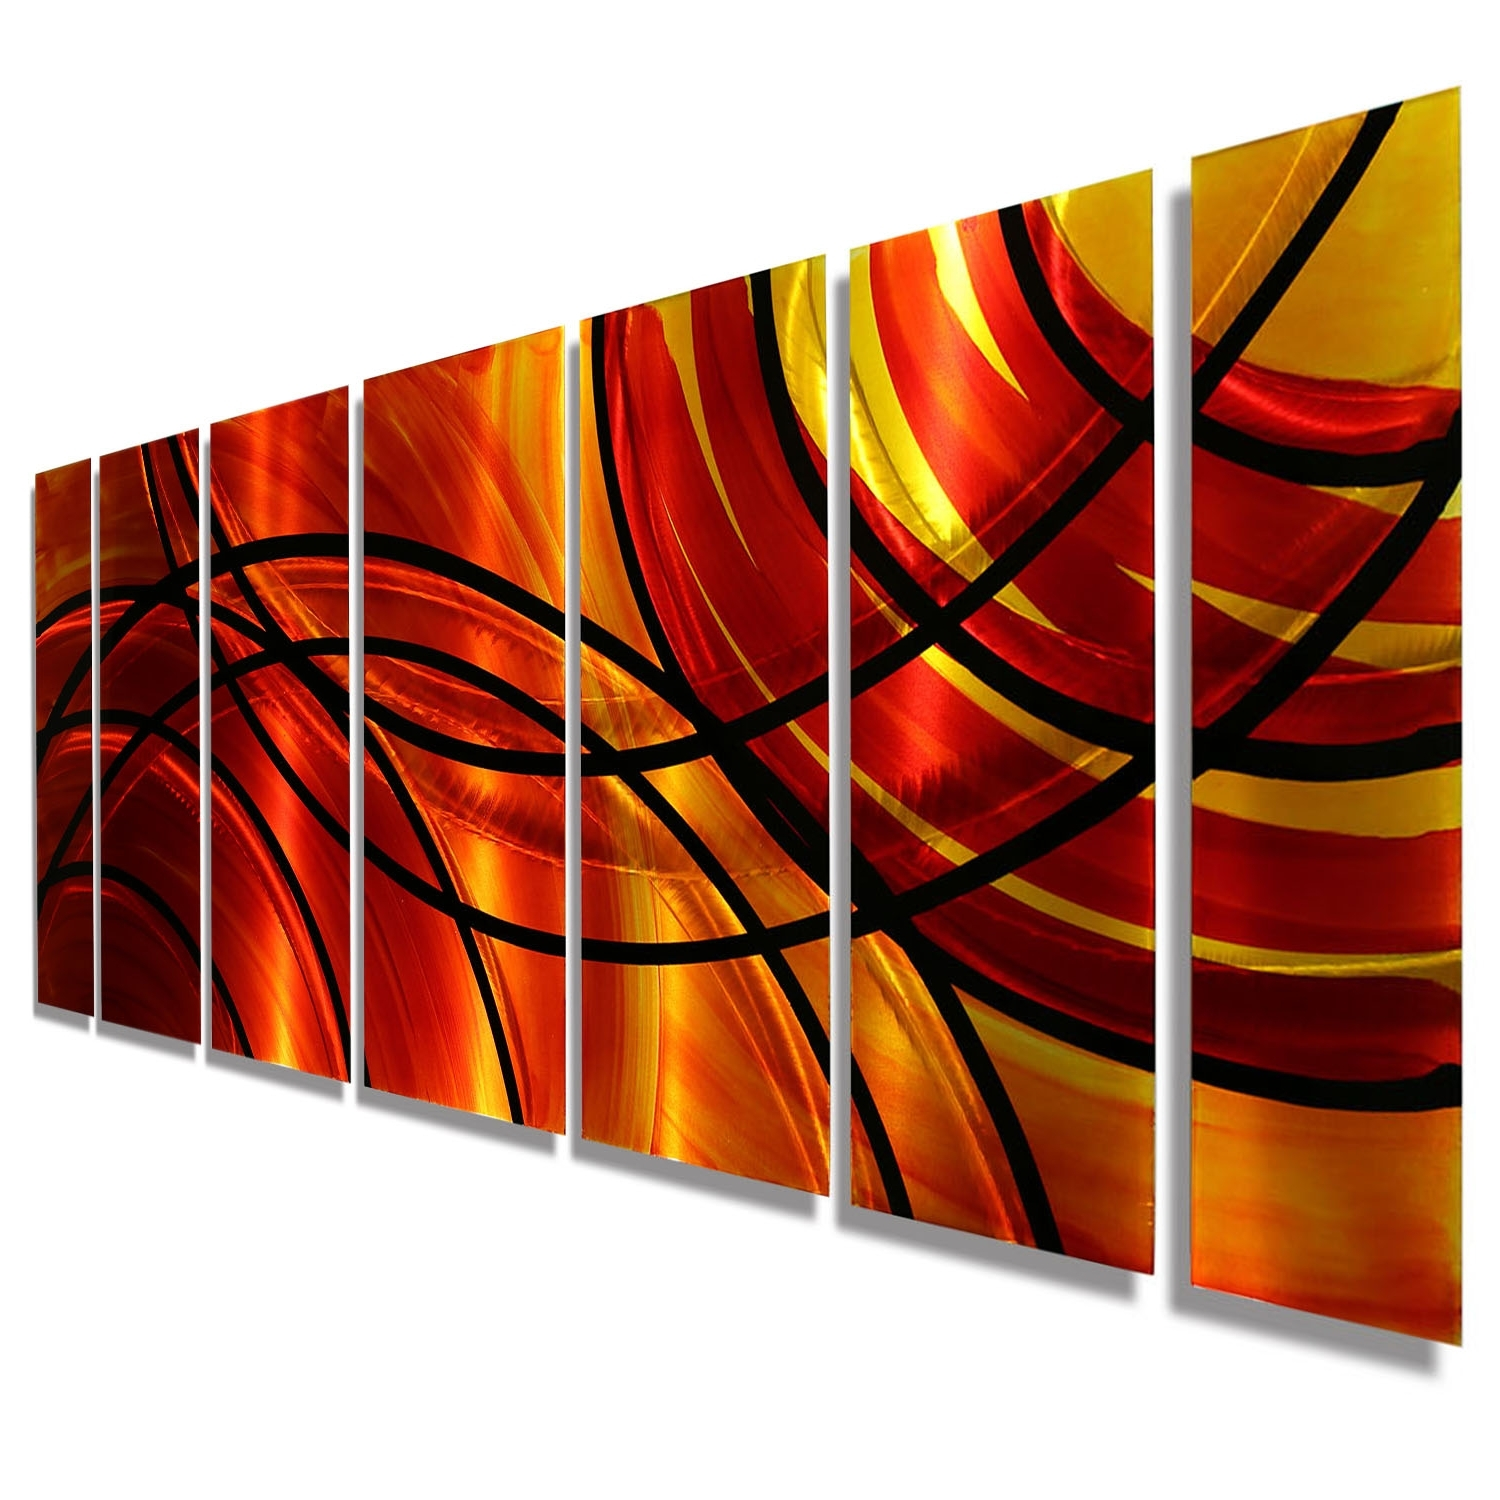 Boundfire – Red & Orange Modern Metal Wall Artjon Allen Throughout Latest Abstract Orange Wall Art (View 7 of 15)